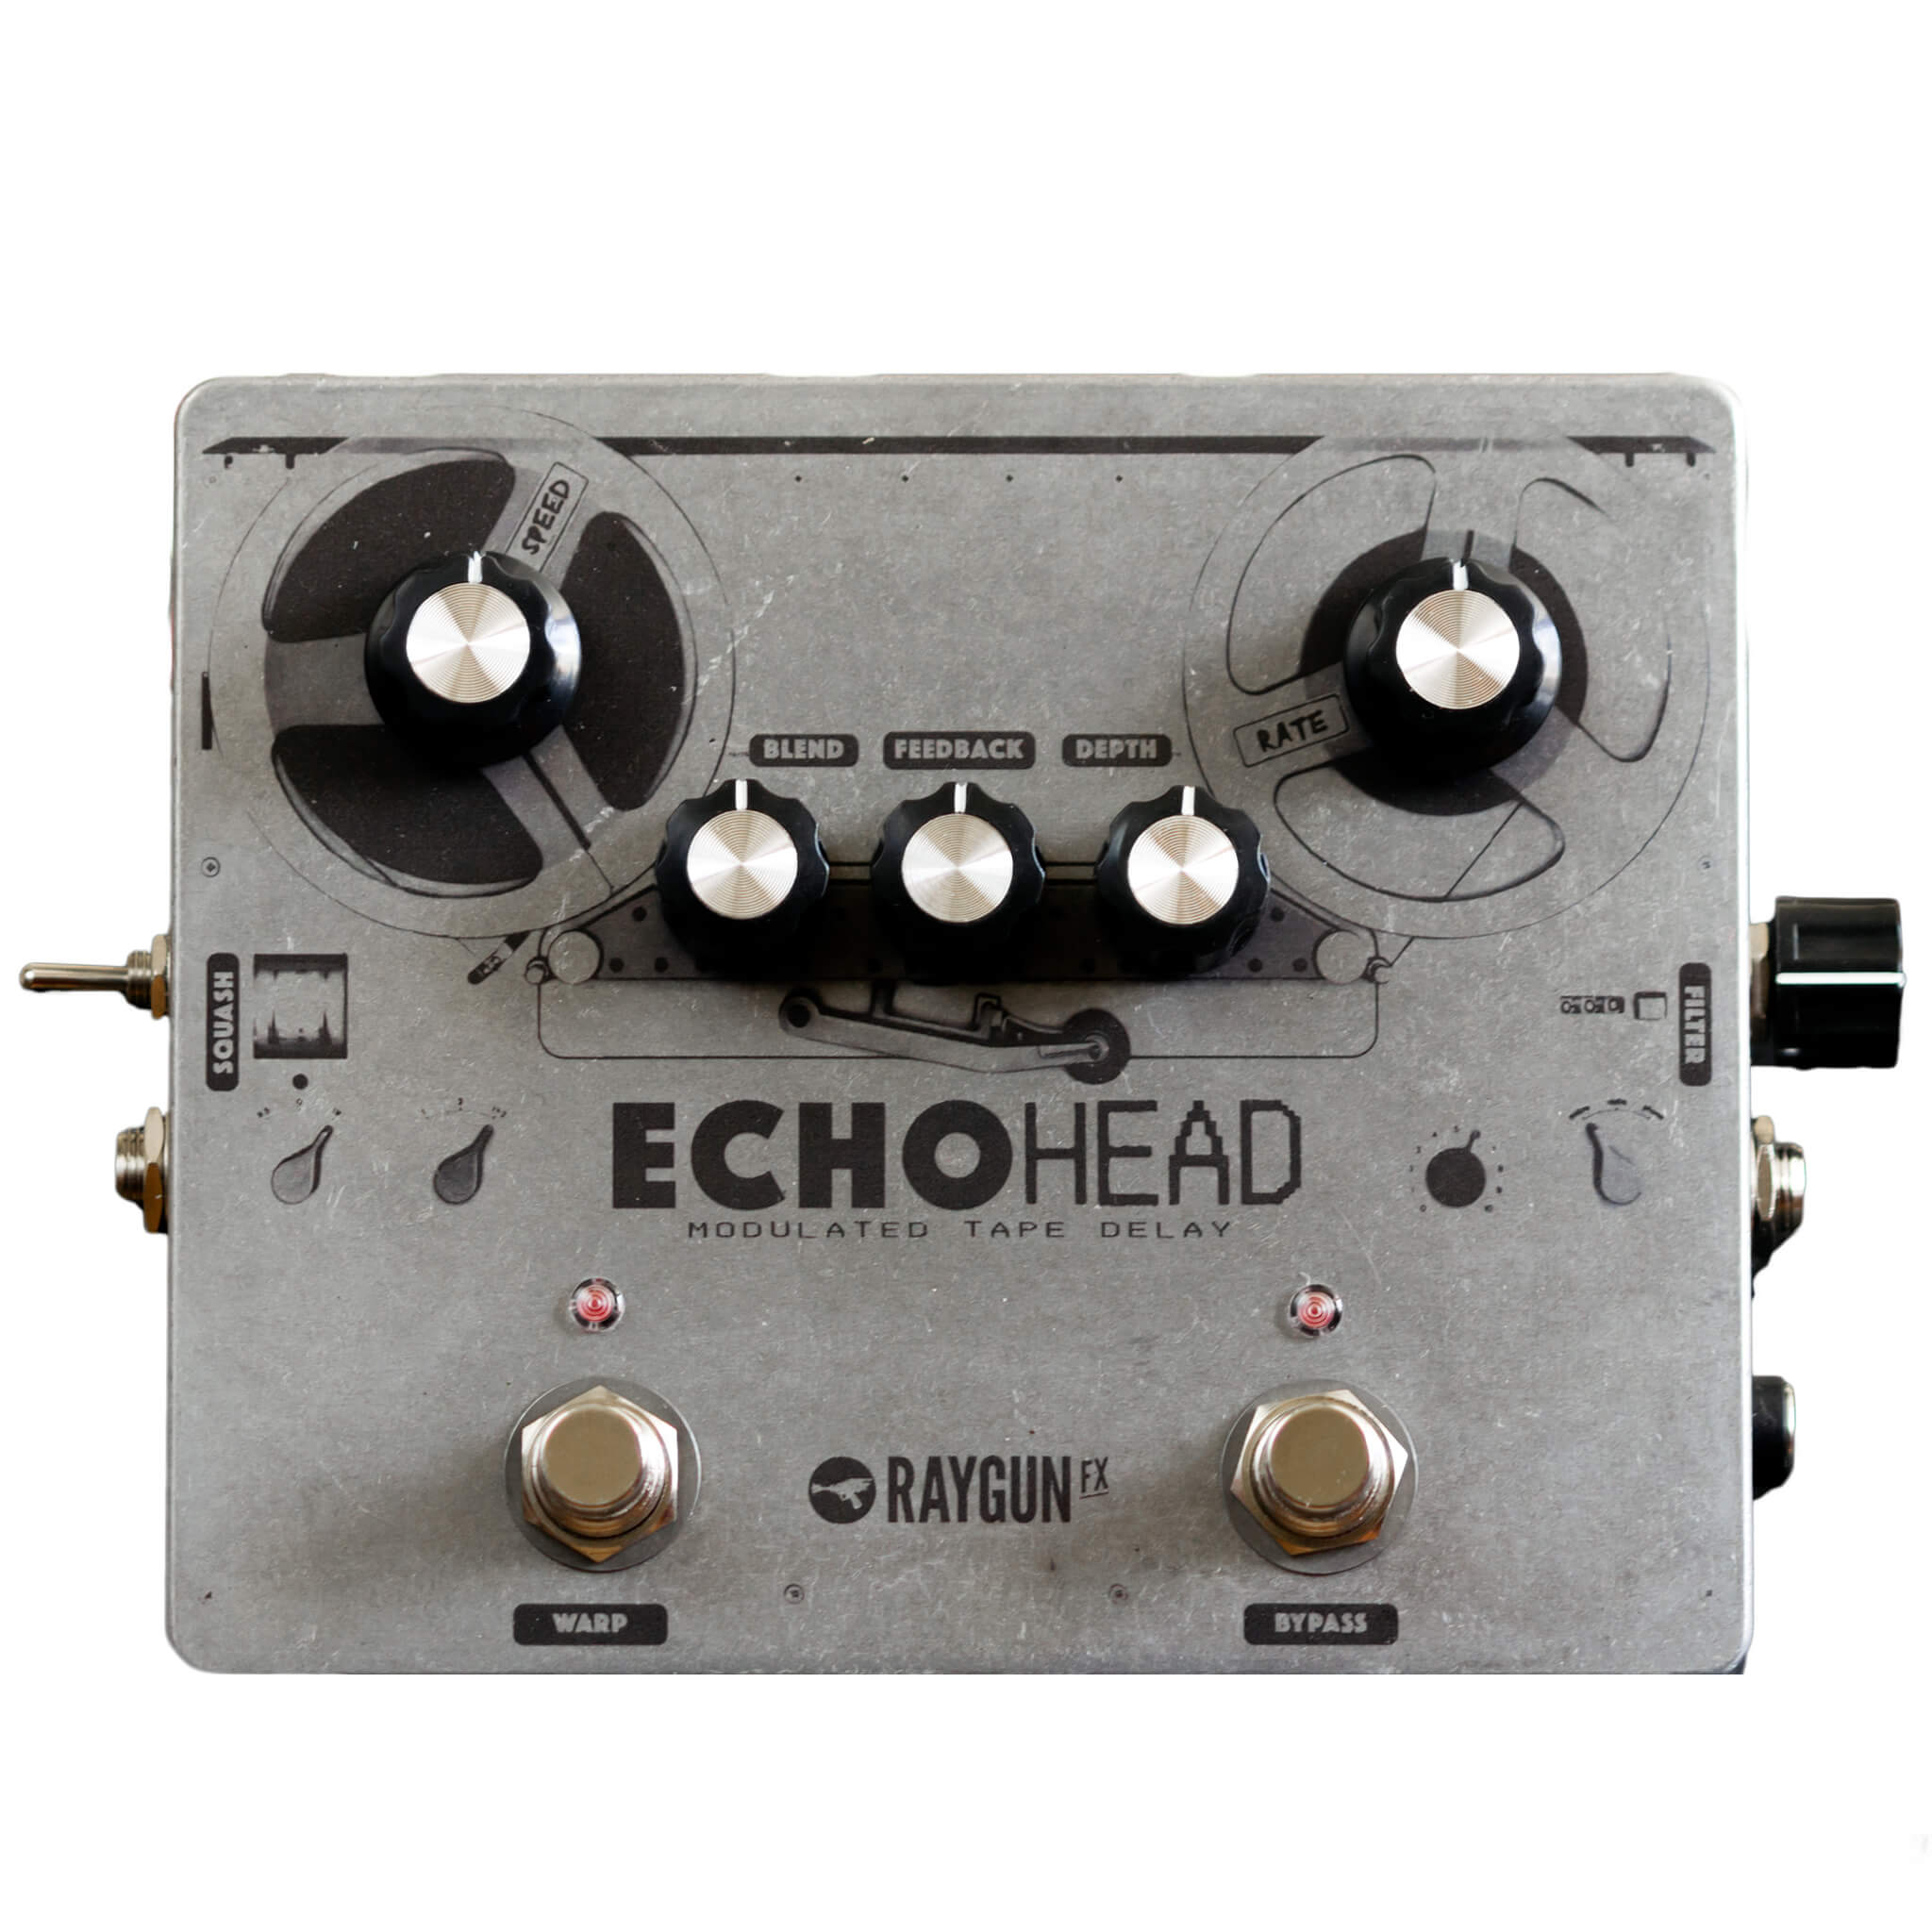 RAYGUN FX Echohead Analogue Delay front transparent - Boost Guitar Pedals